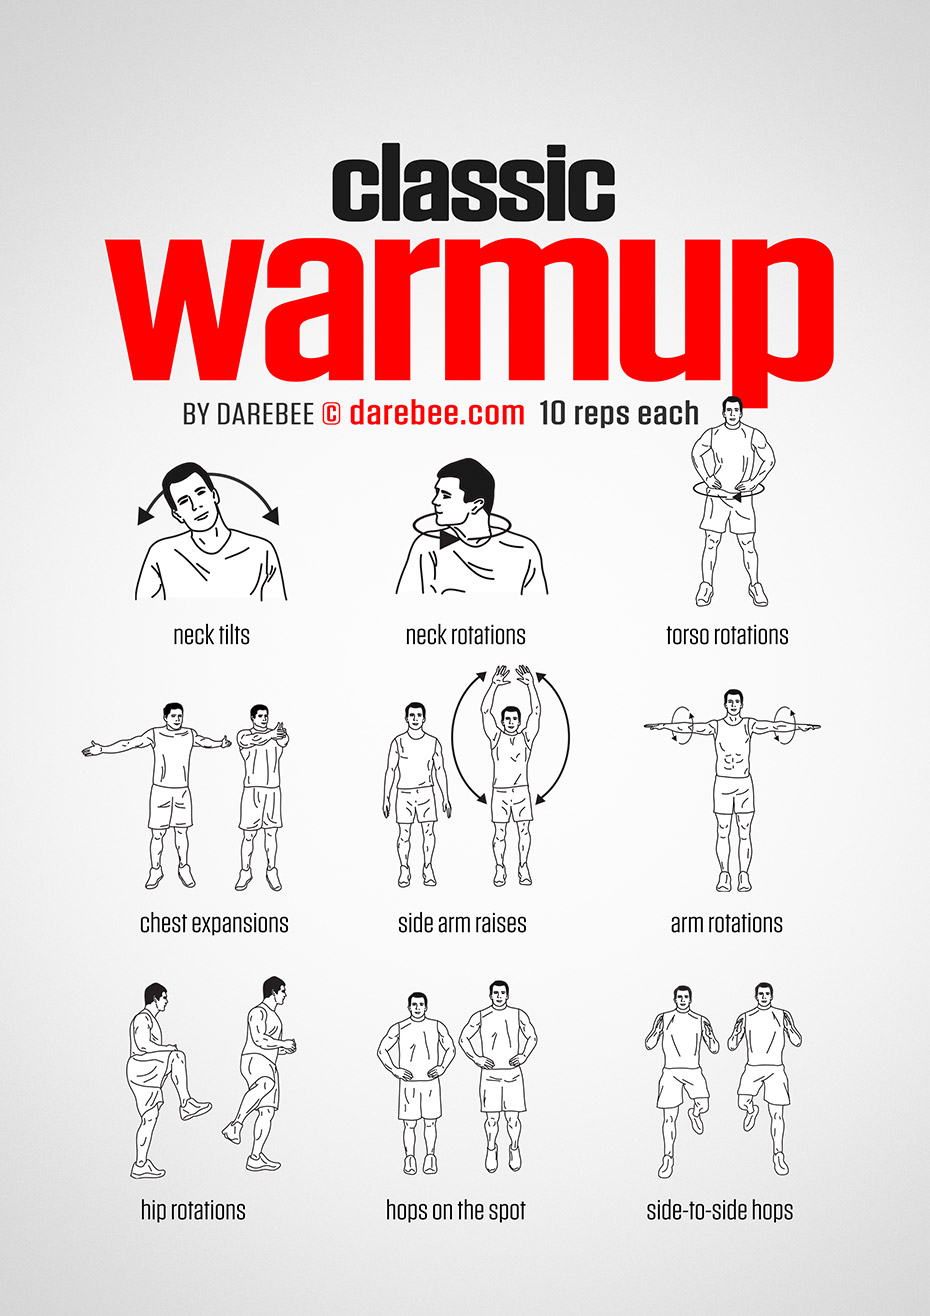 classic warmup workout